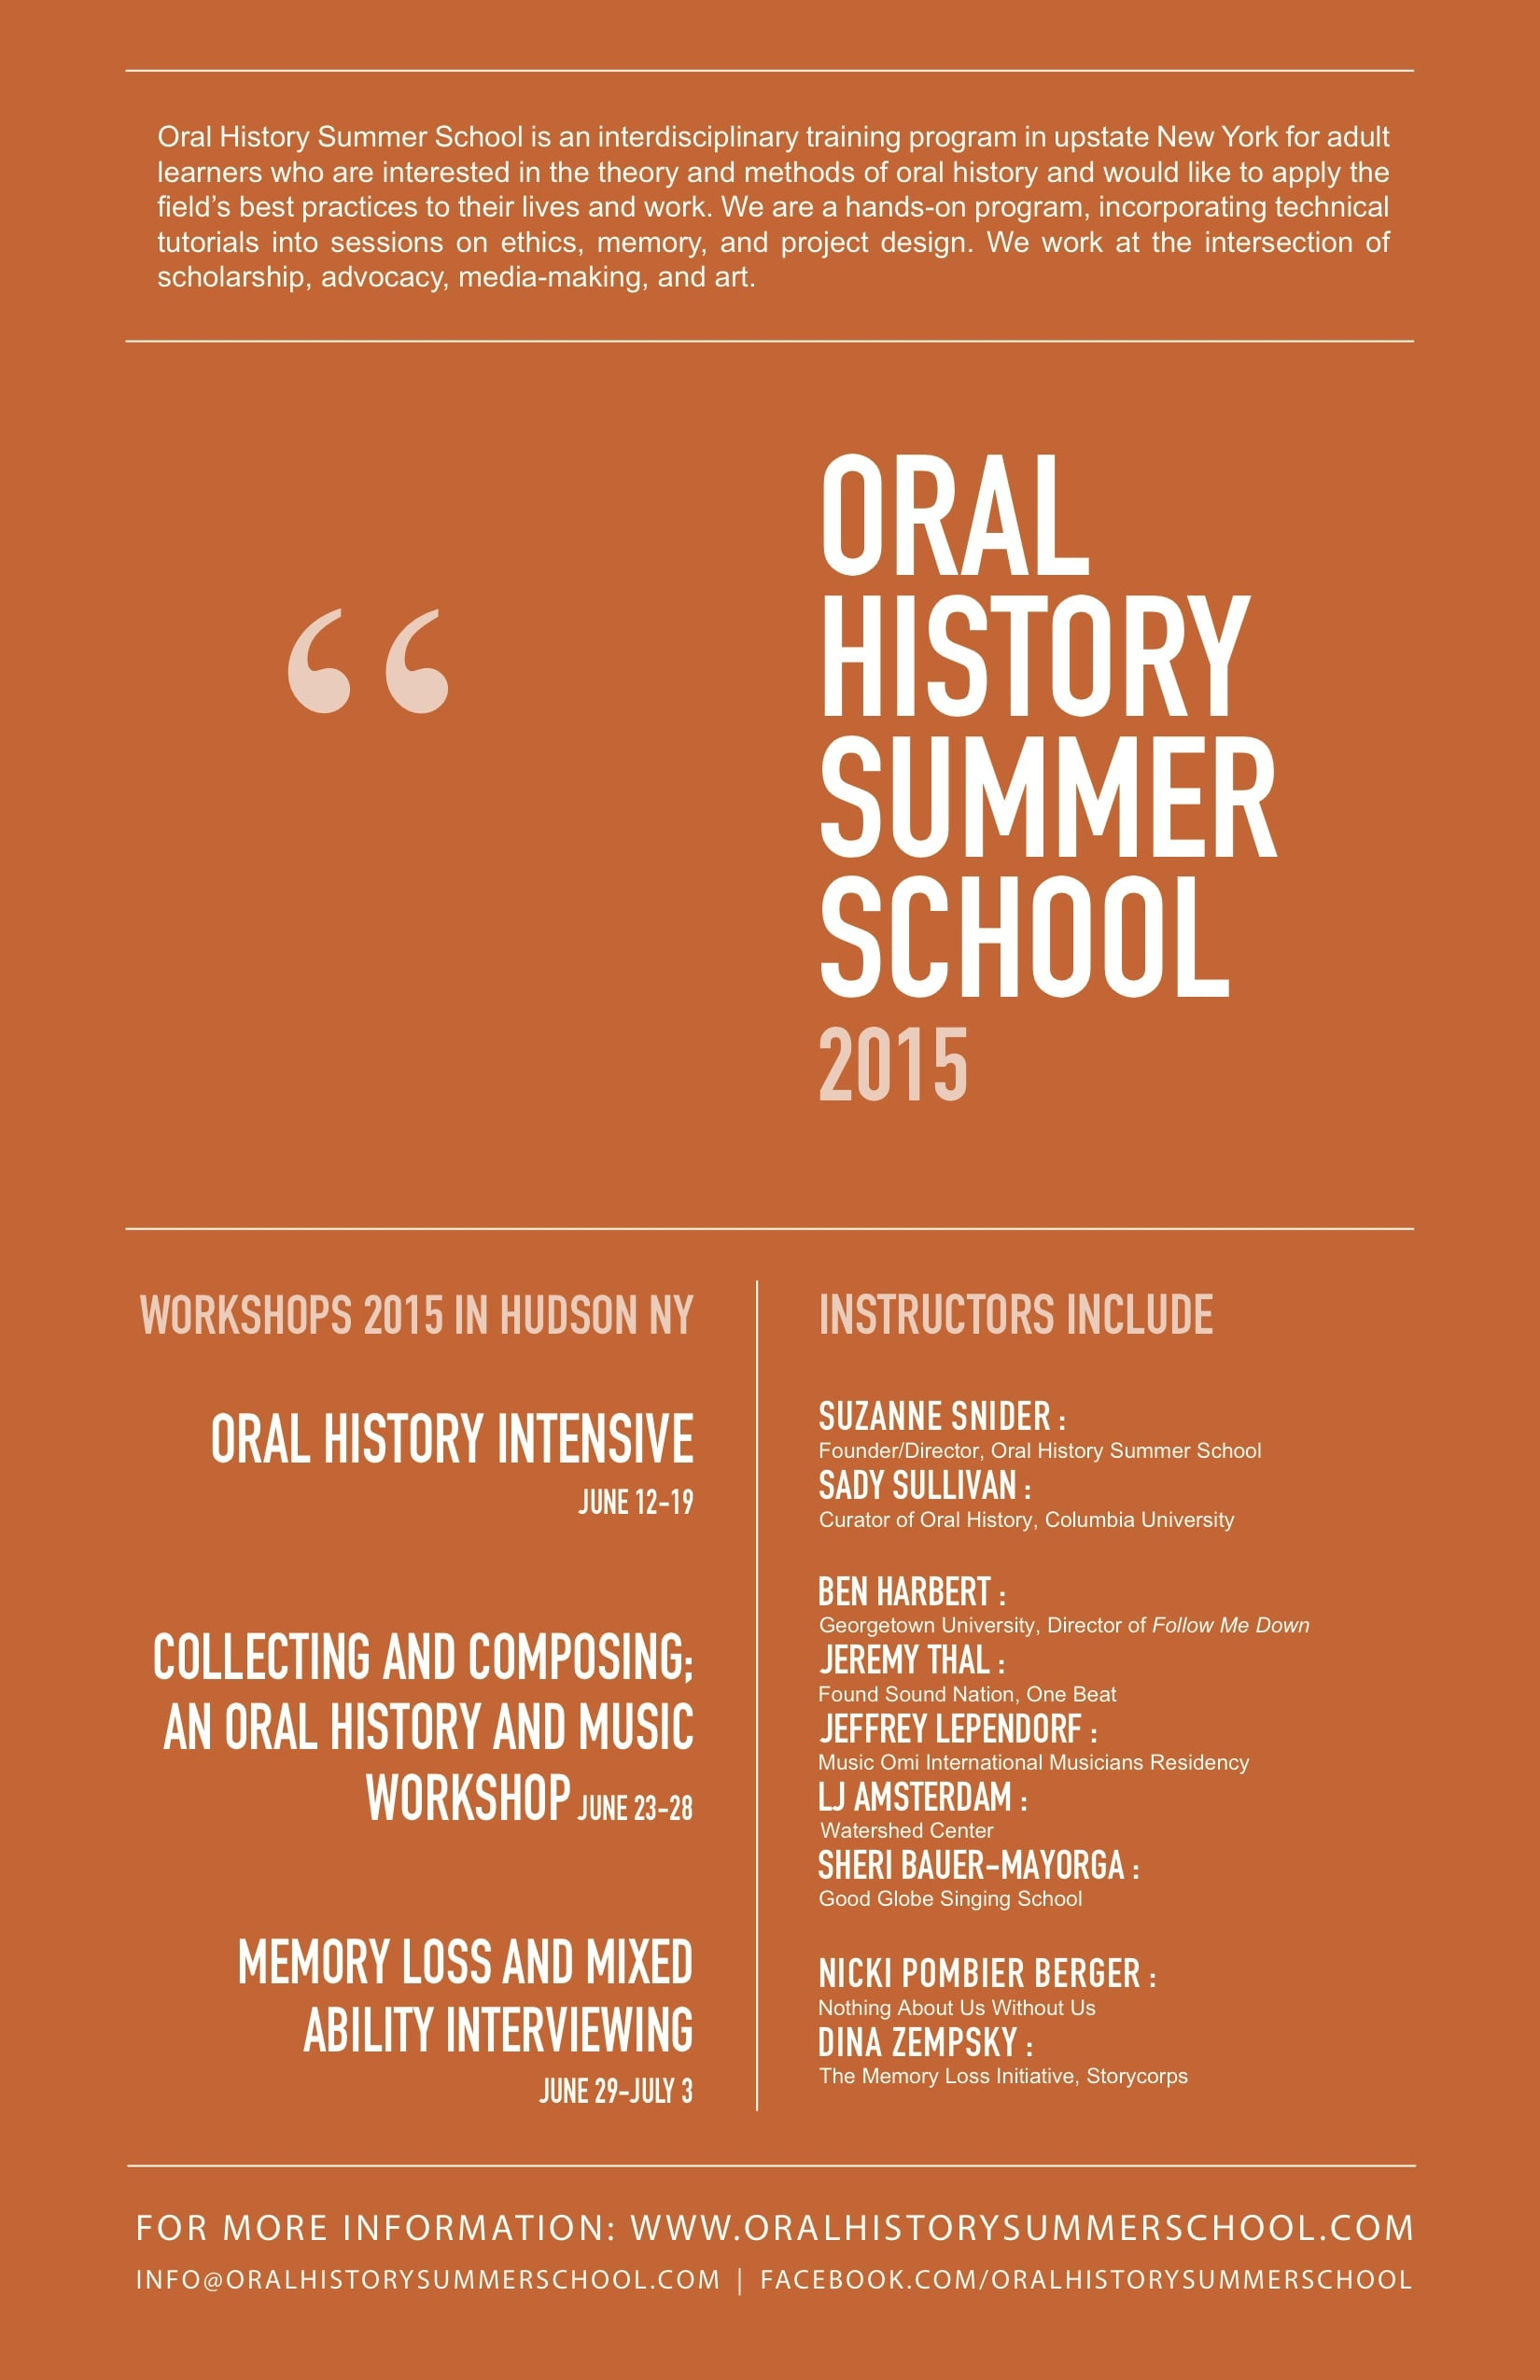 Oral History Summer School 2015